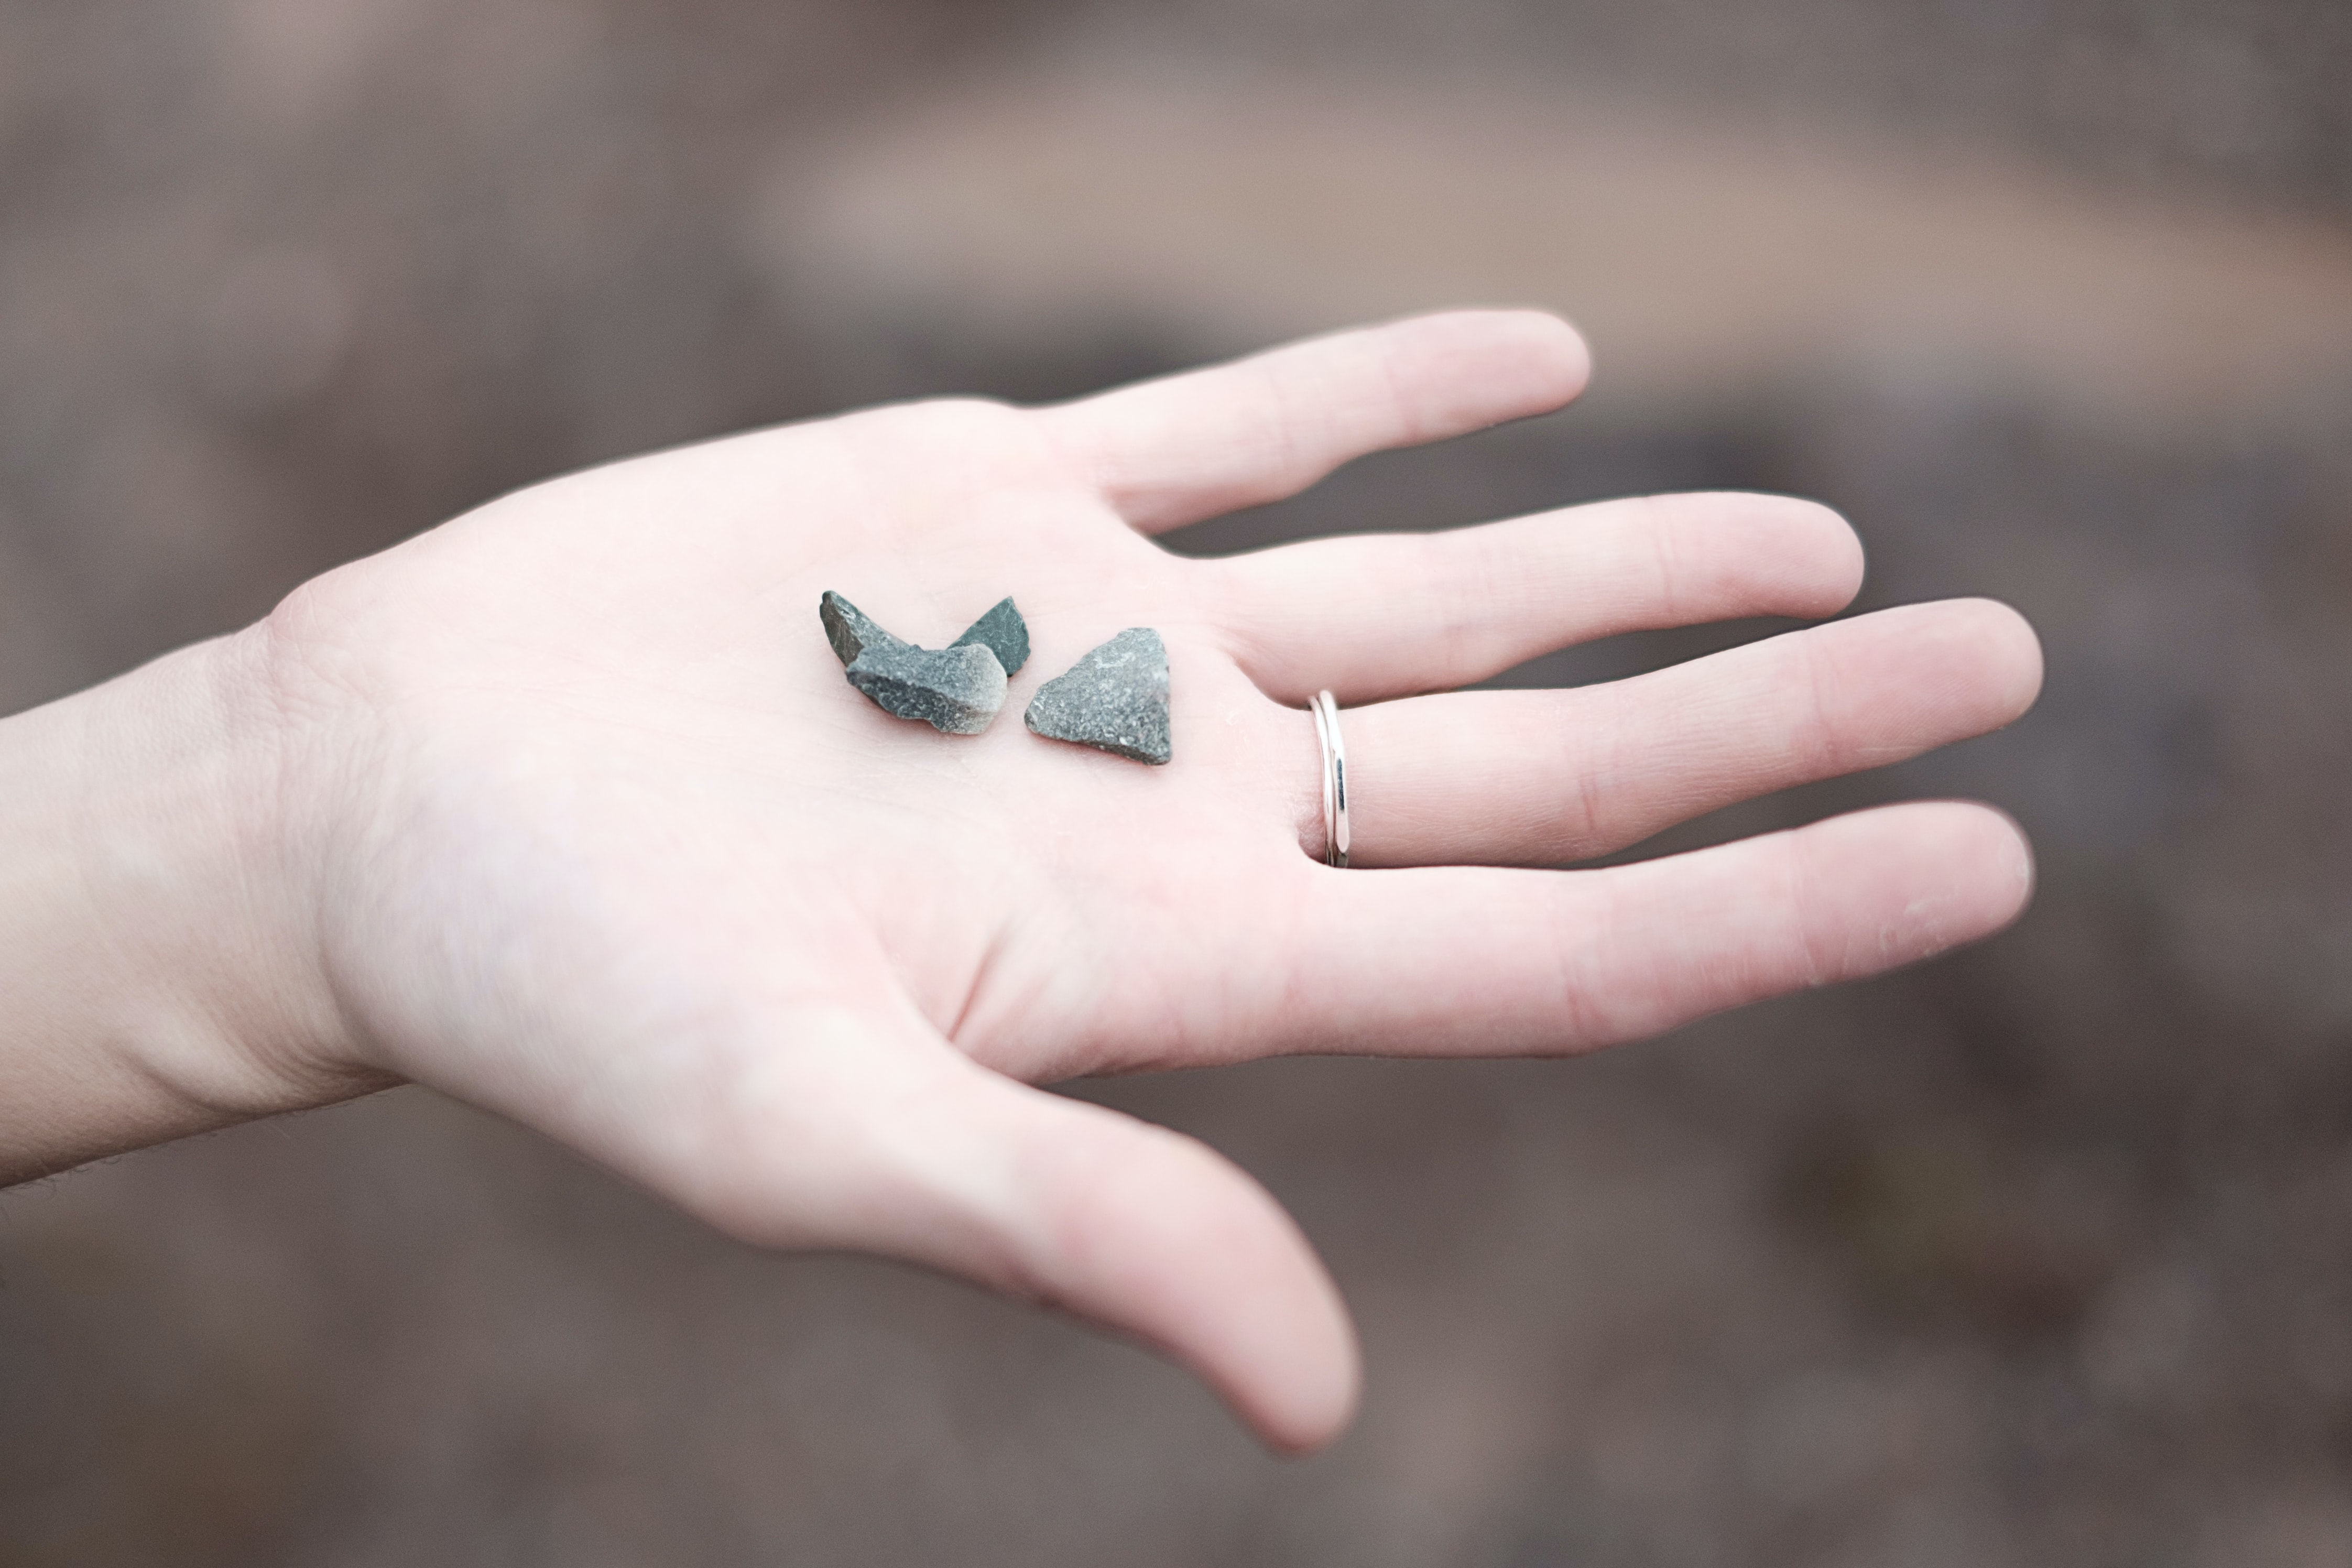 Small stones in a person's outstretched hand